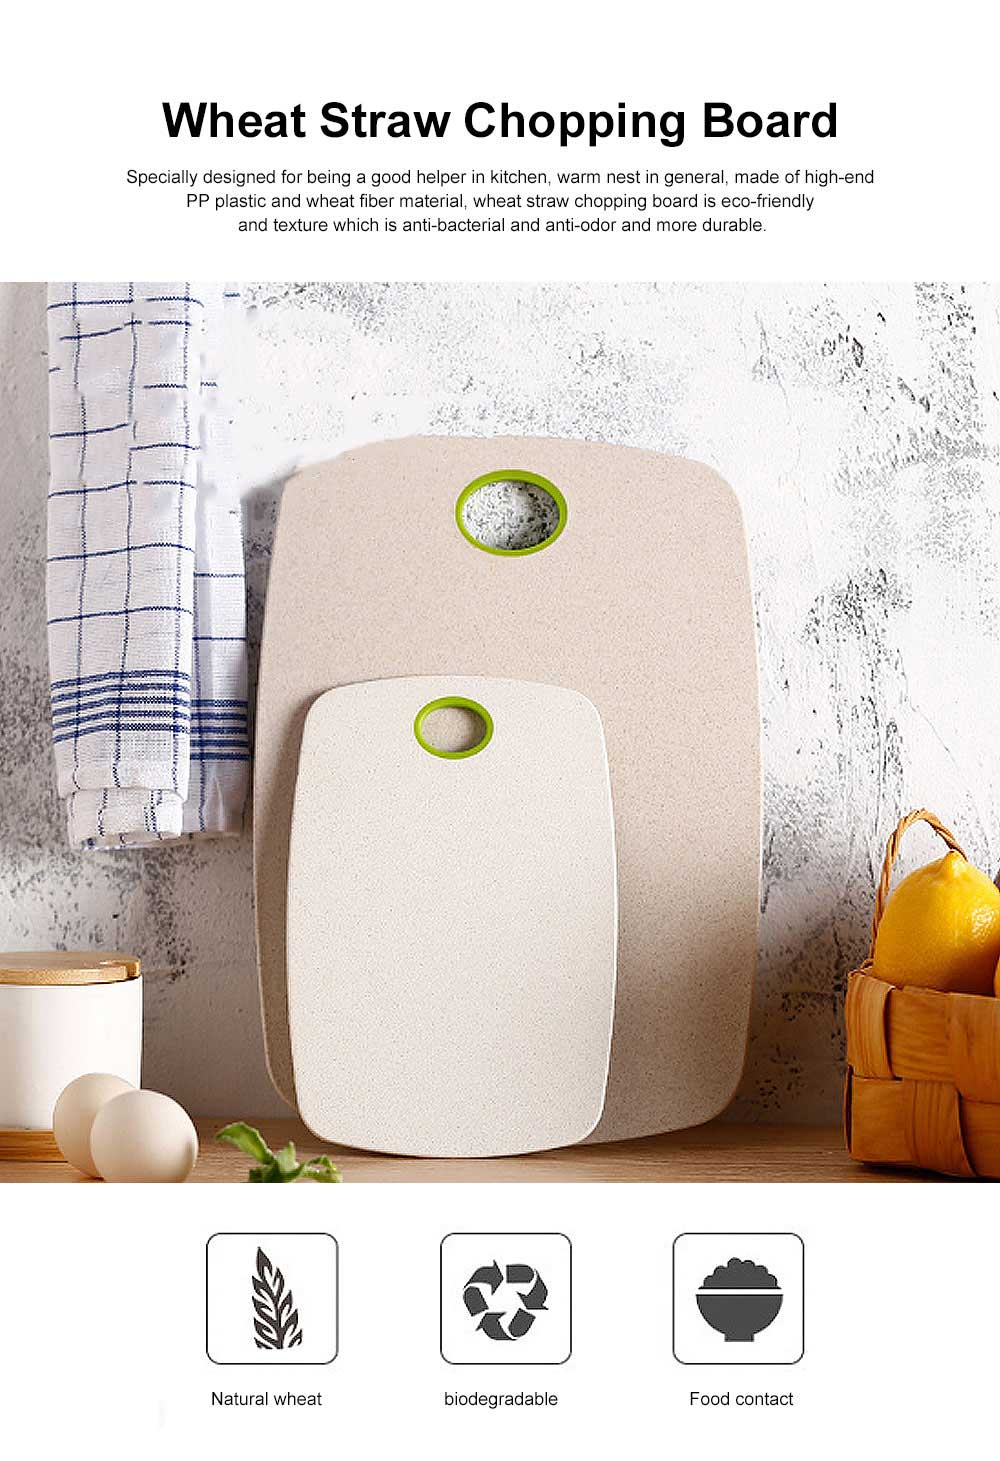 Biodegradable Eco- friendly Cutting Board, Wheat Straw Chopping Board for Cutting Vegetables, Fruits 0